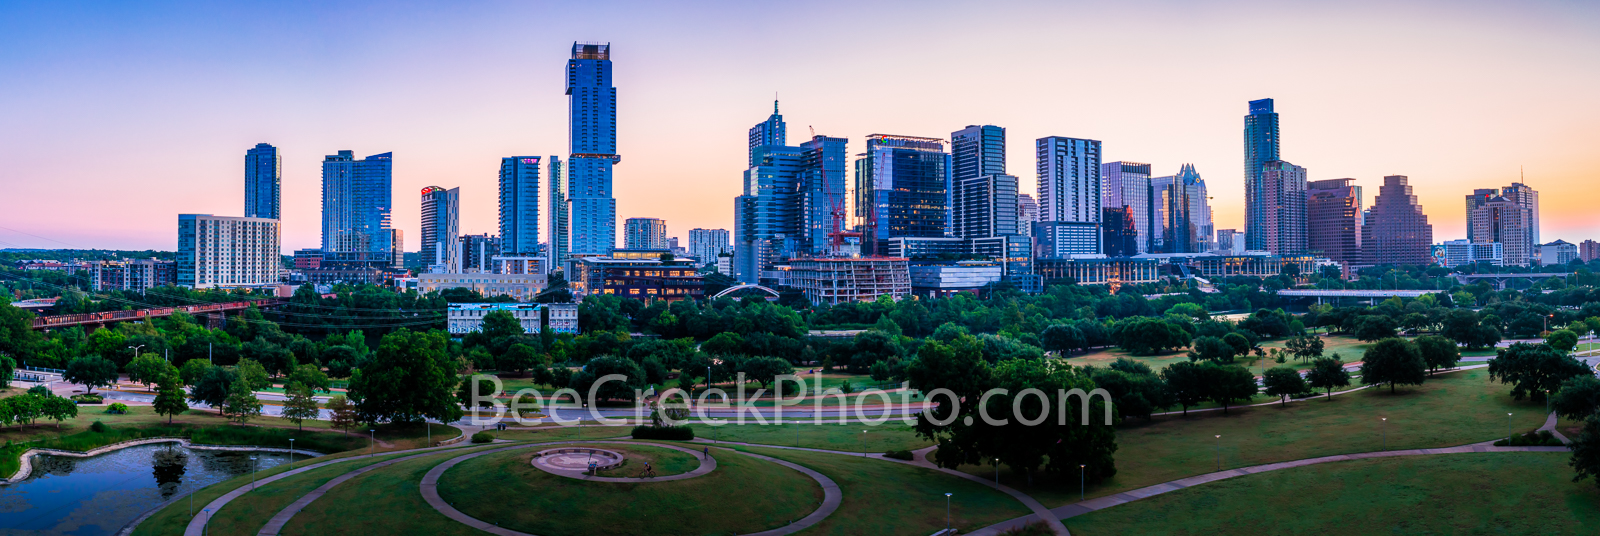 austin skyline, austin, sunrise, dawn,  austin texas, austin downtown, texas, austin tx, downtown austin, texas capitol, south, town lake, lady bird lake, colorado river, city of austin, photo